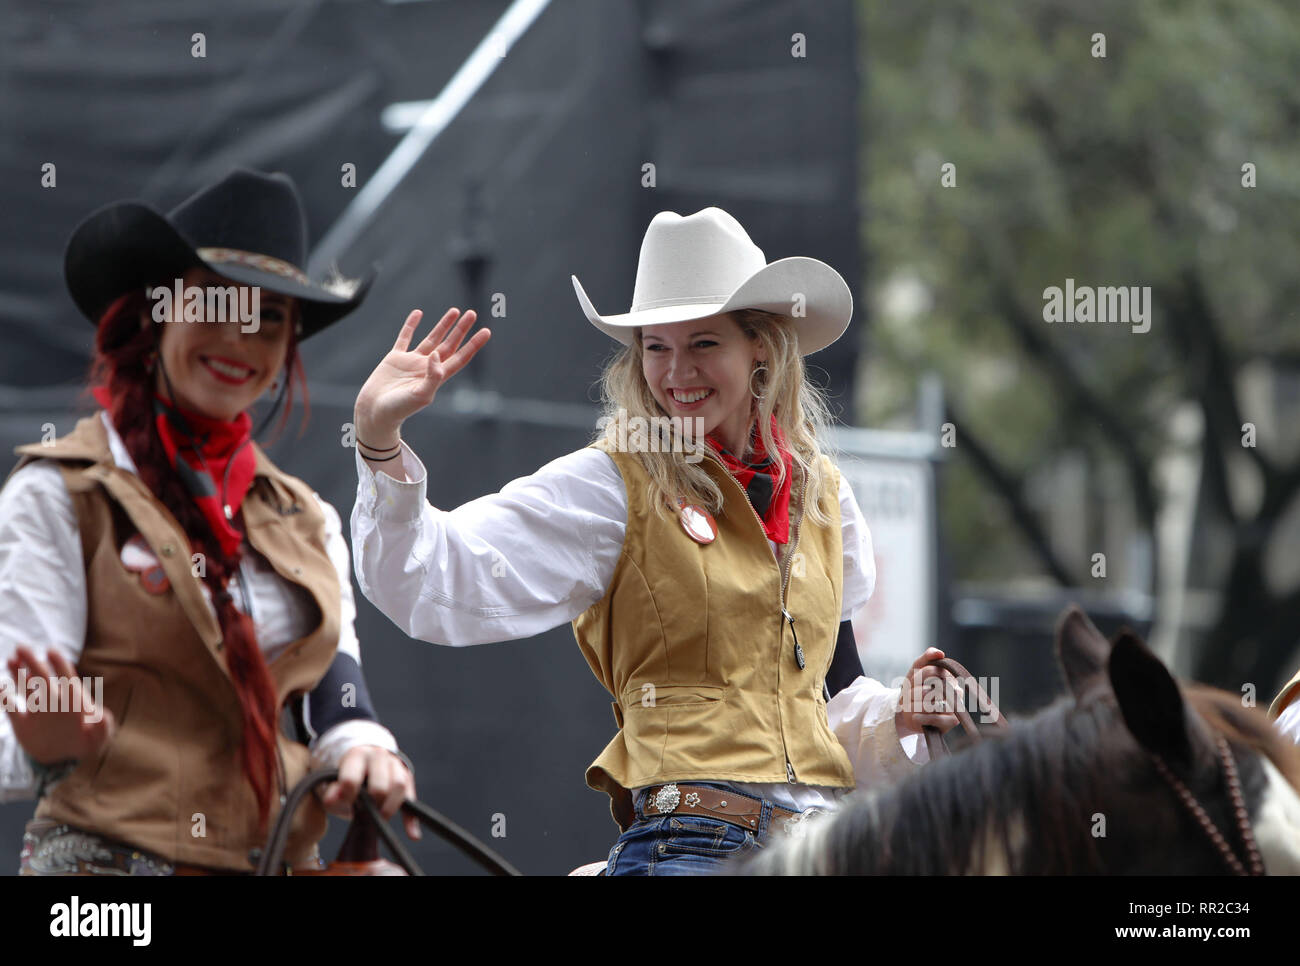 b143b6a8d4f A Houston Stock Photos   A Houston Stock Images - Page 4 - Alamy